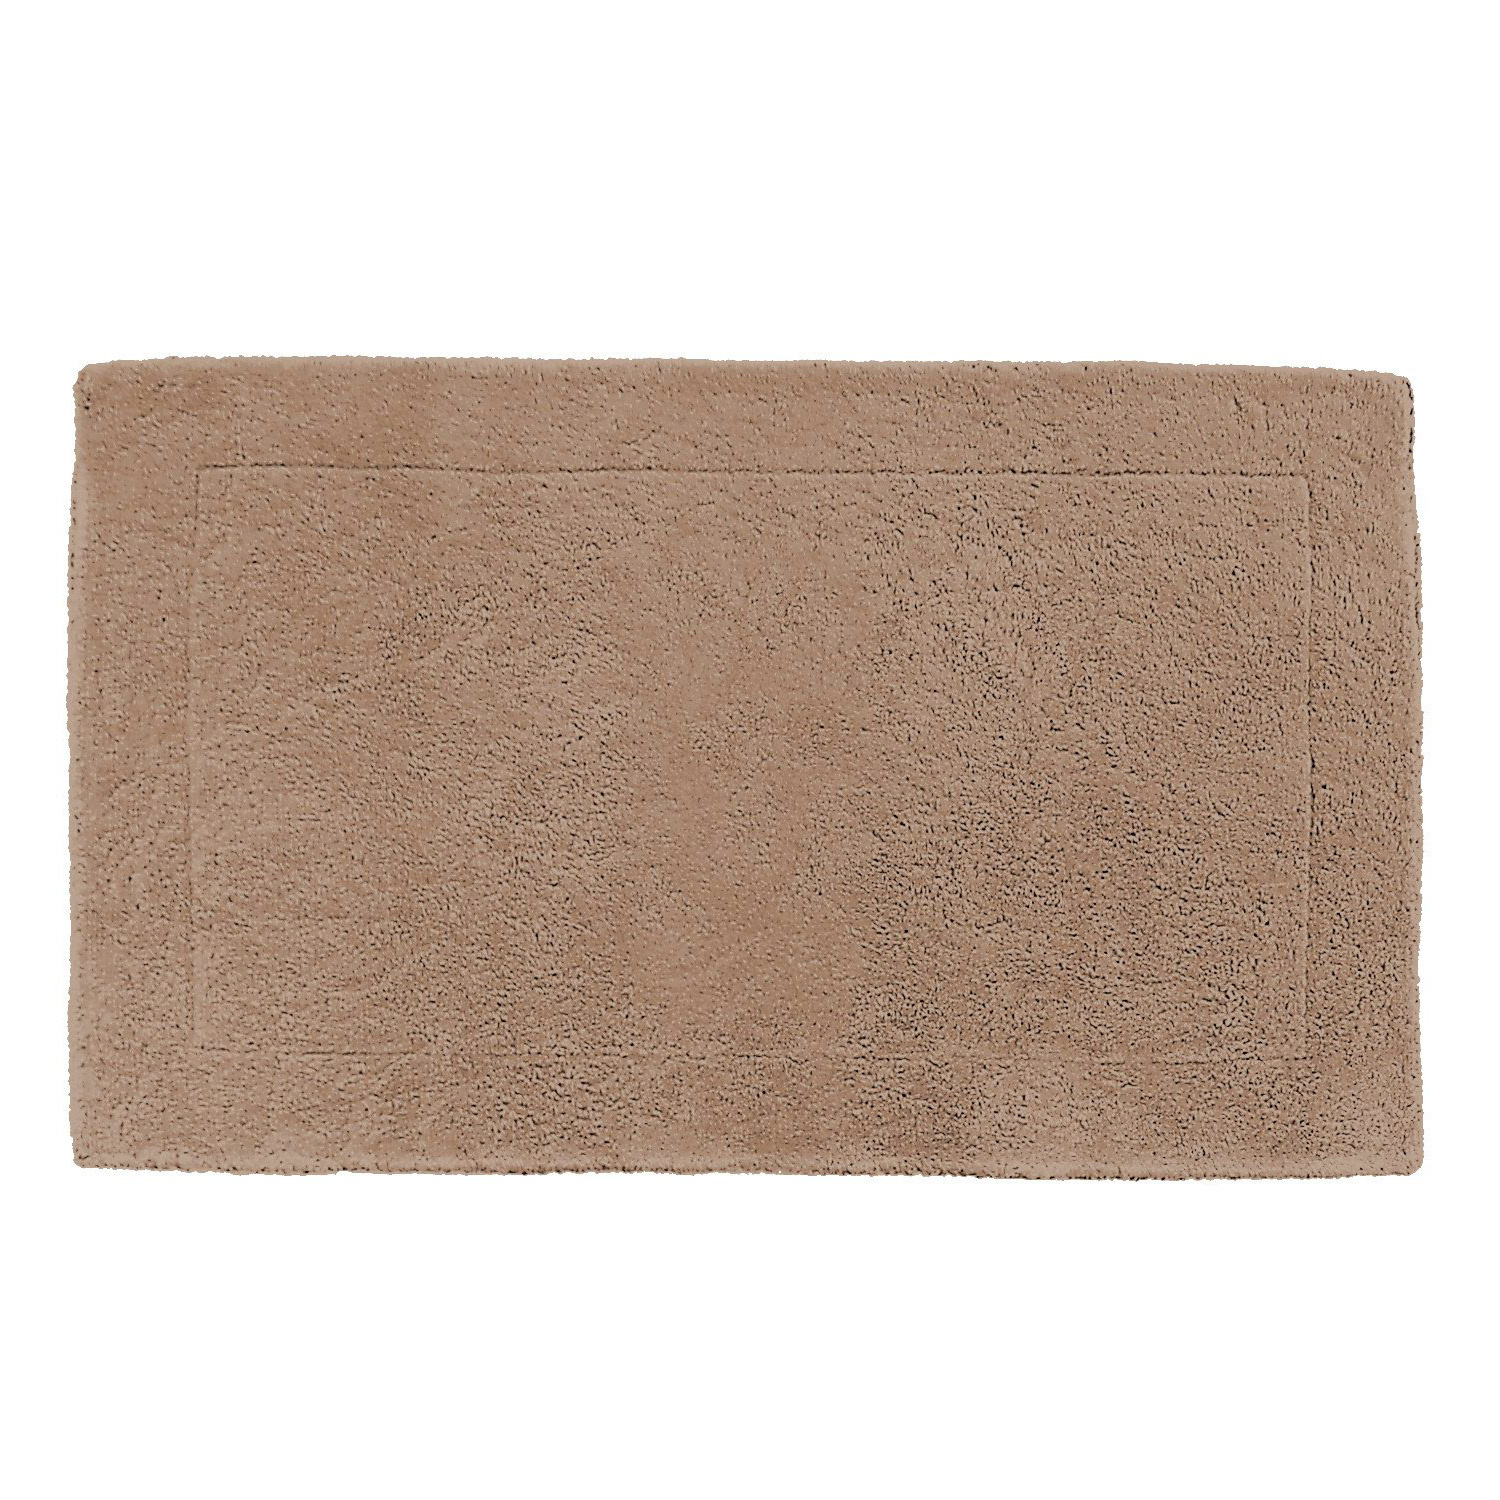 Double Sided Bath Rugs - Assorted Colours-6